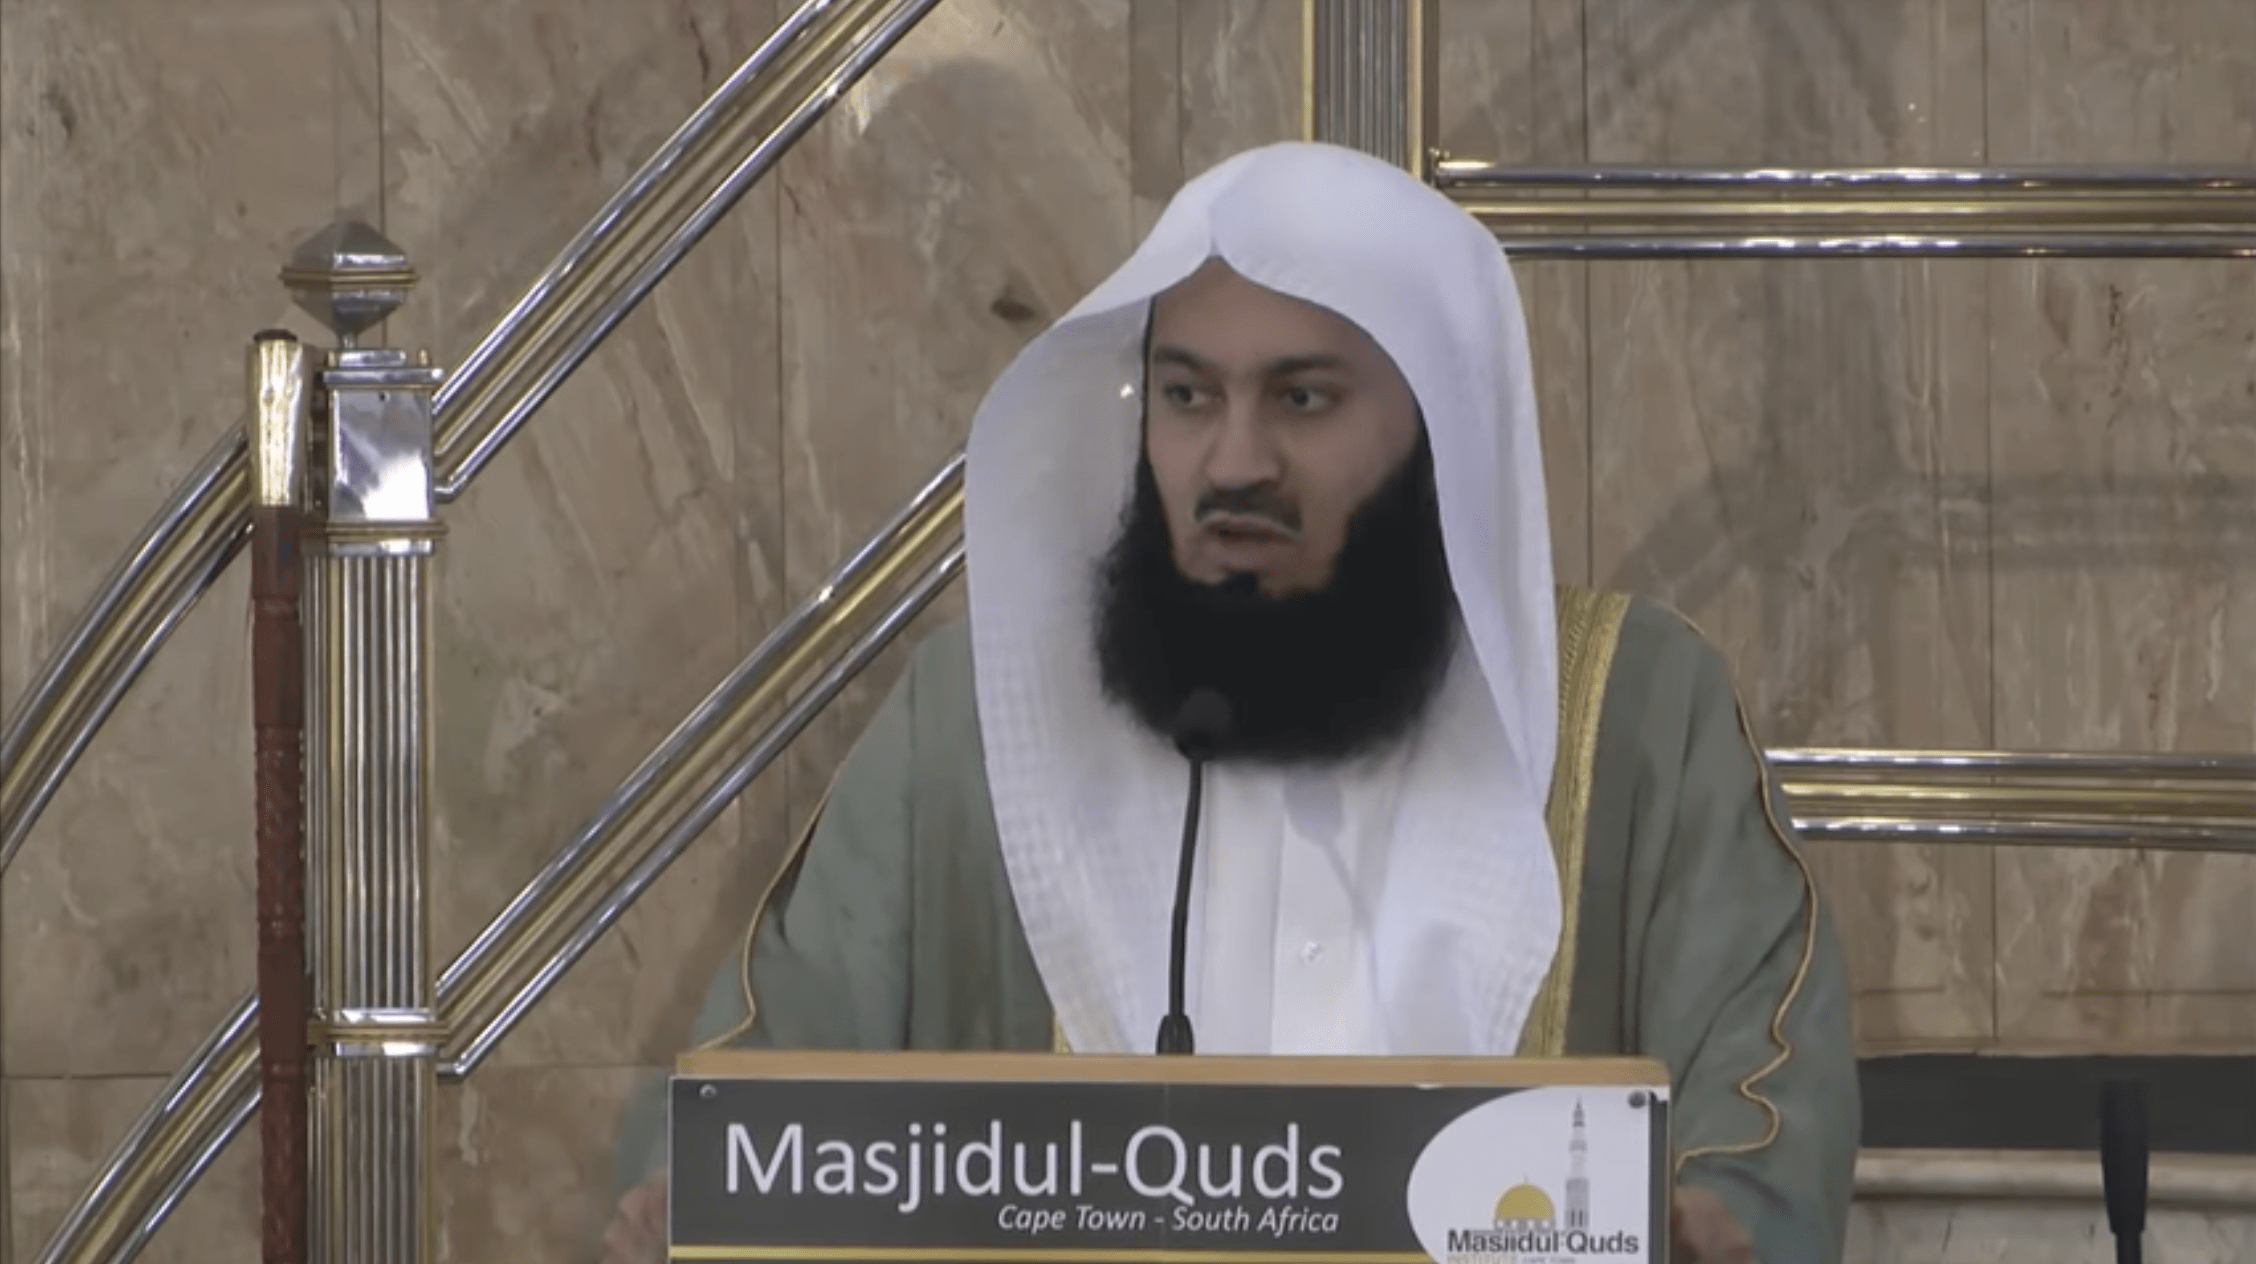 Ismail ibn Musa Menk – Hajj and Unity